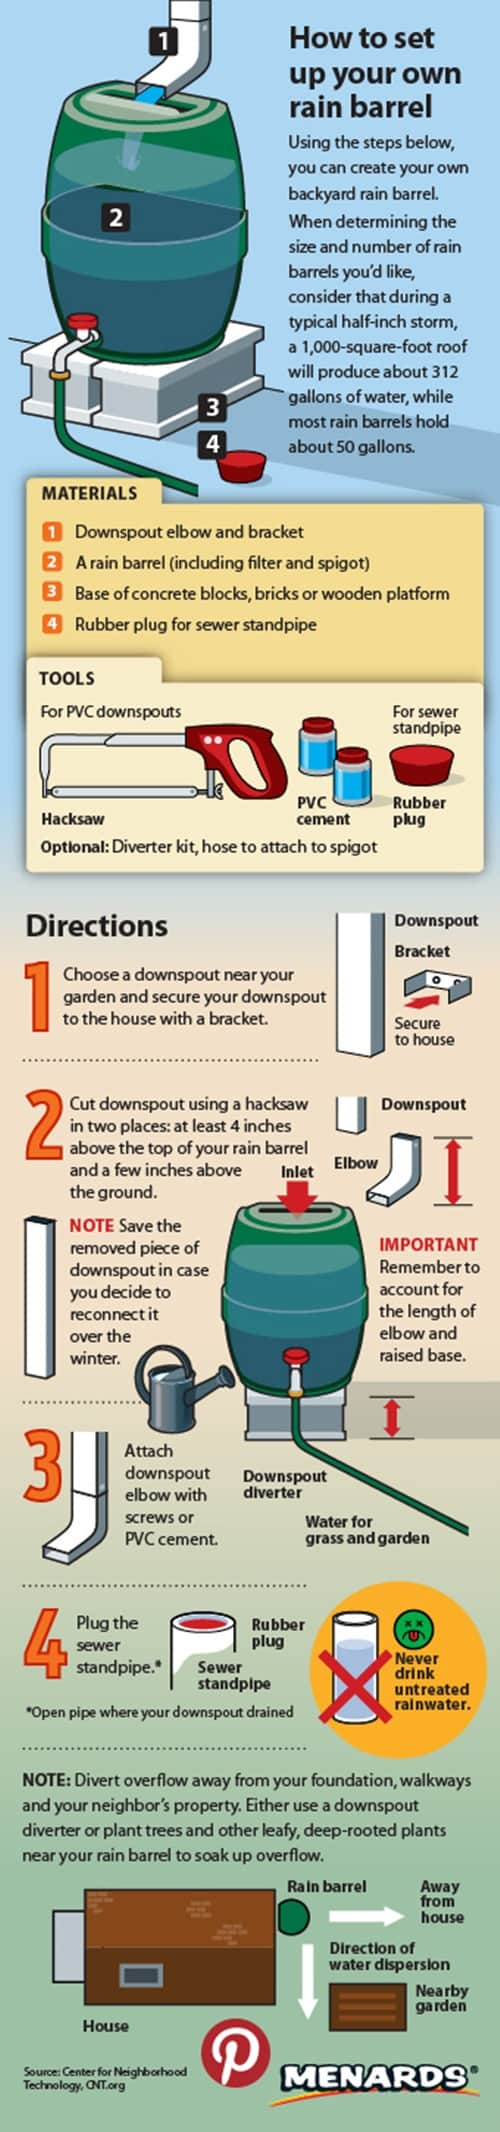 how to set up your own rain barrel system